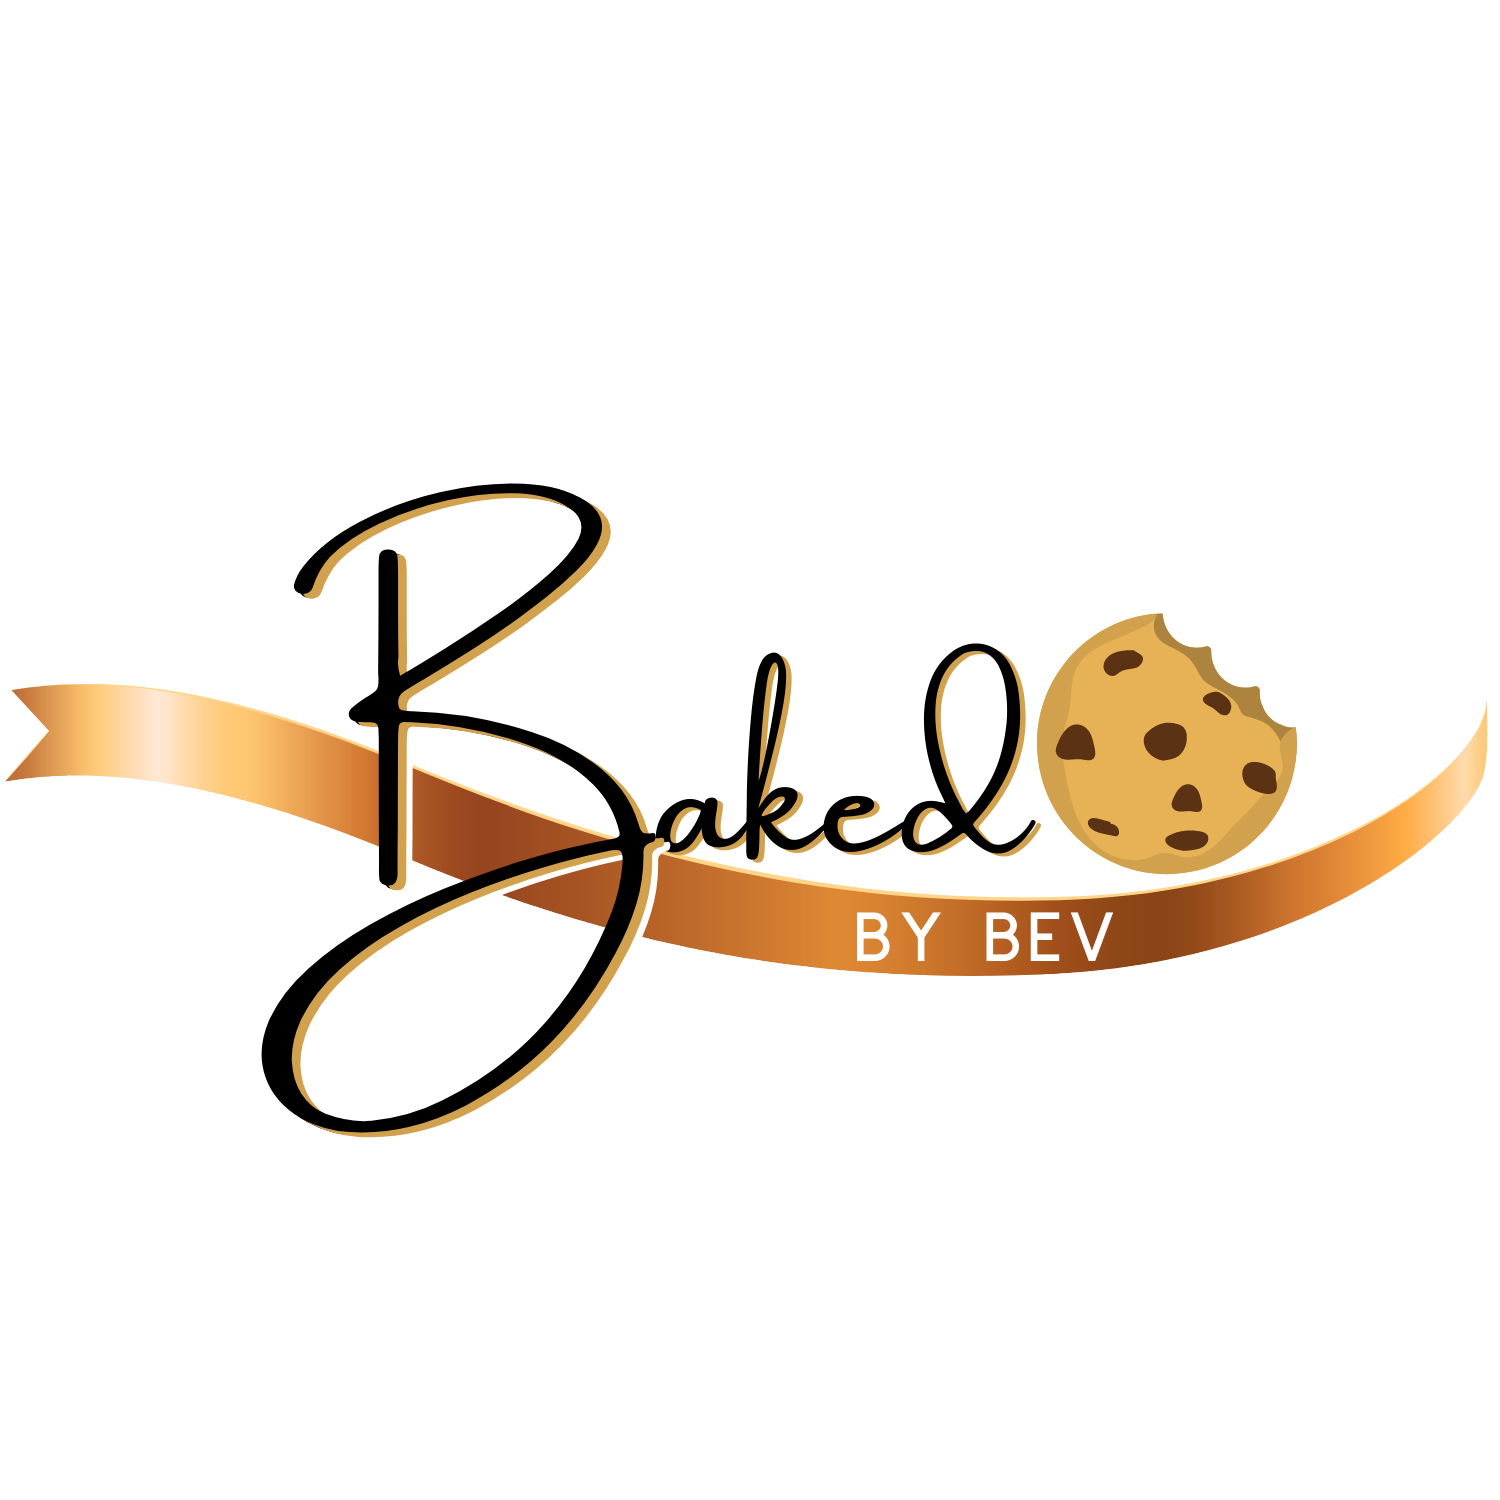 Baked By Bev